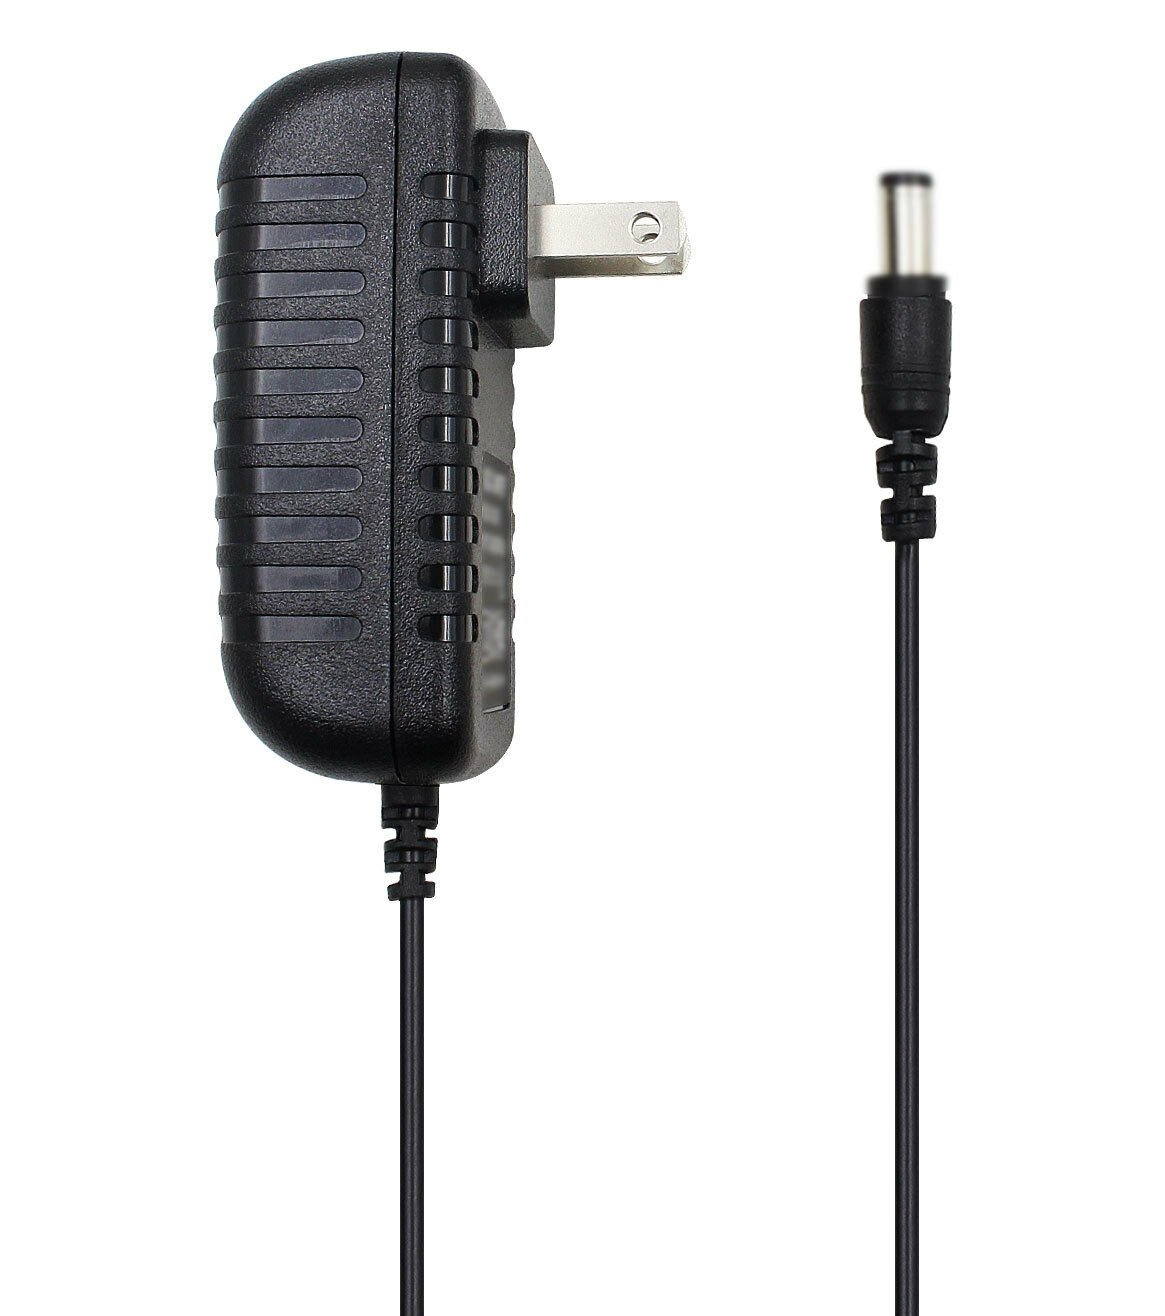 AC Power Supply Adapter for LINE 6 POD HD500 GUITAR EFFECT PEDAL